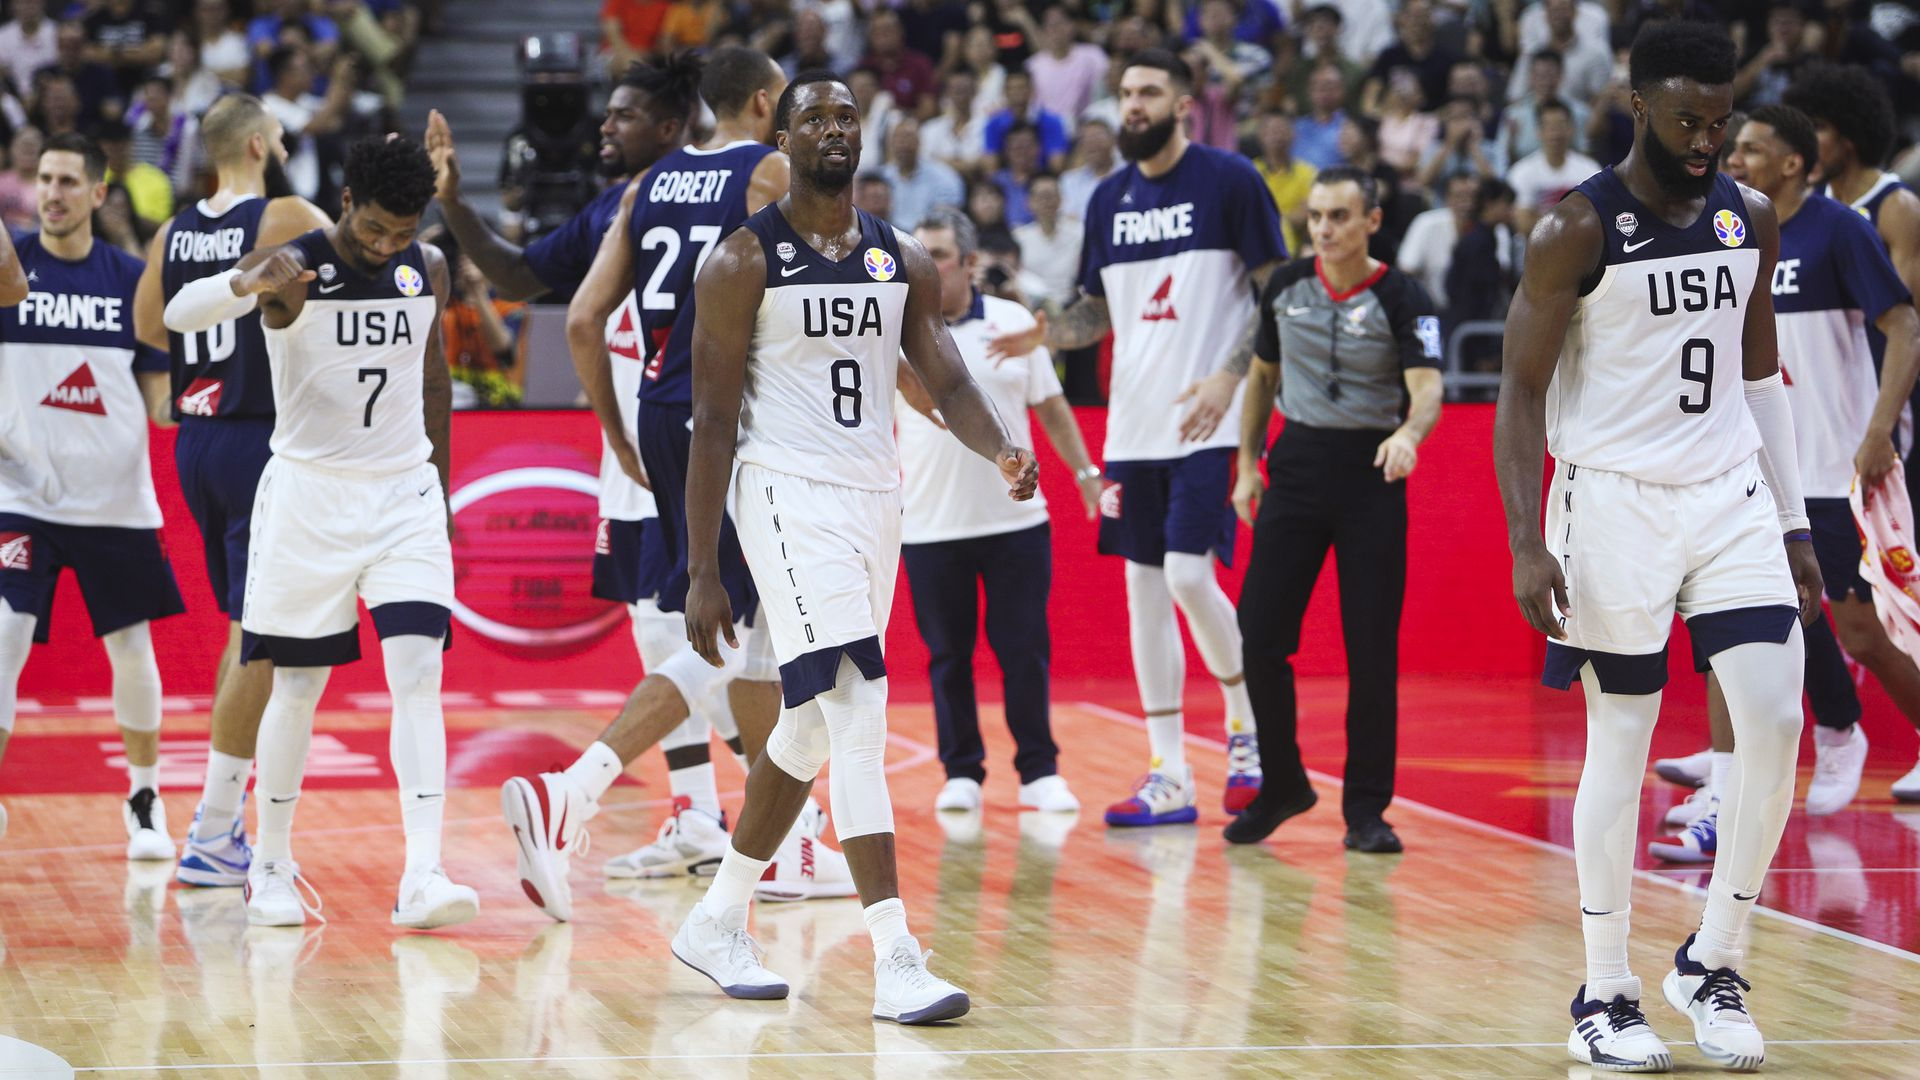 Team USA after losing to France